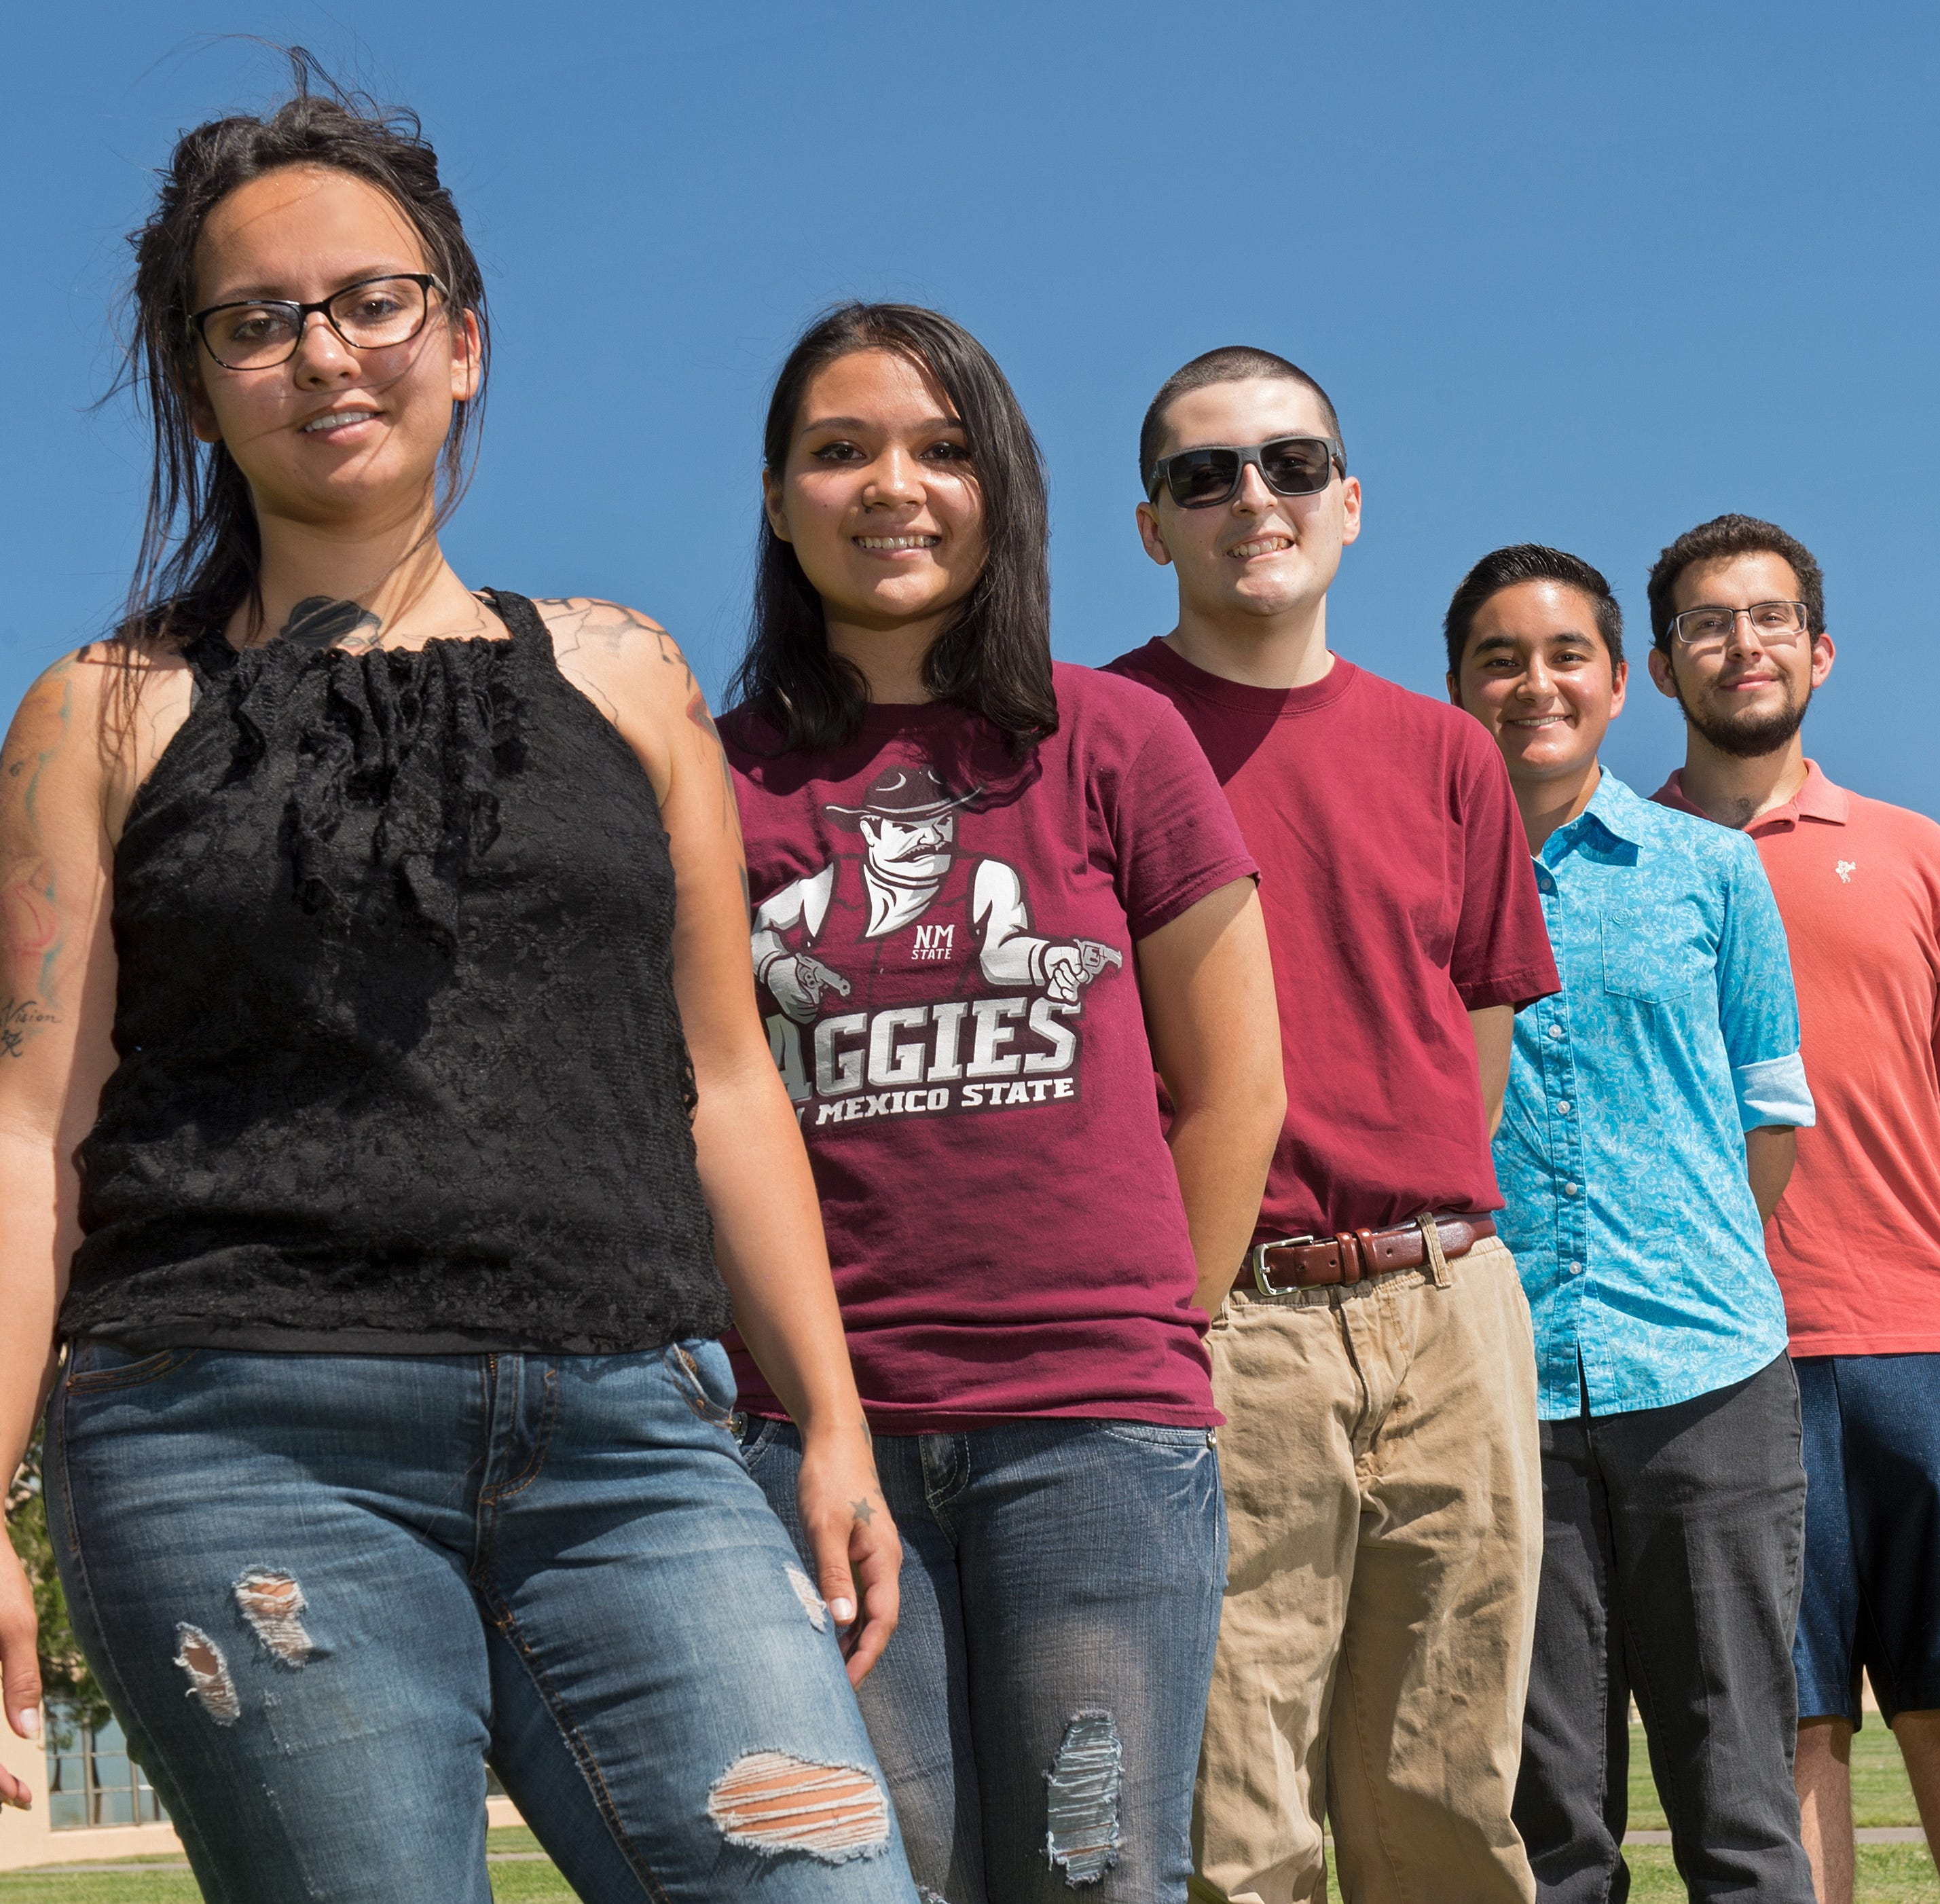 NMSU students among small group to spend semester at Google